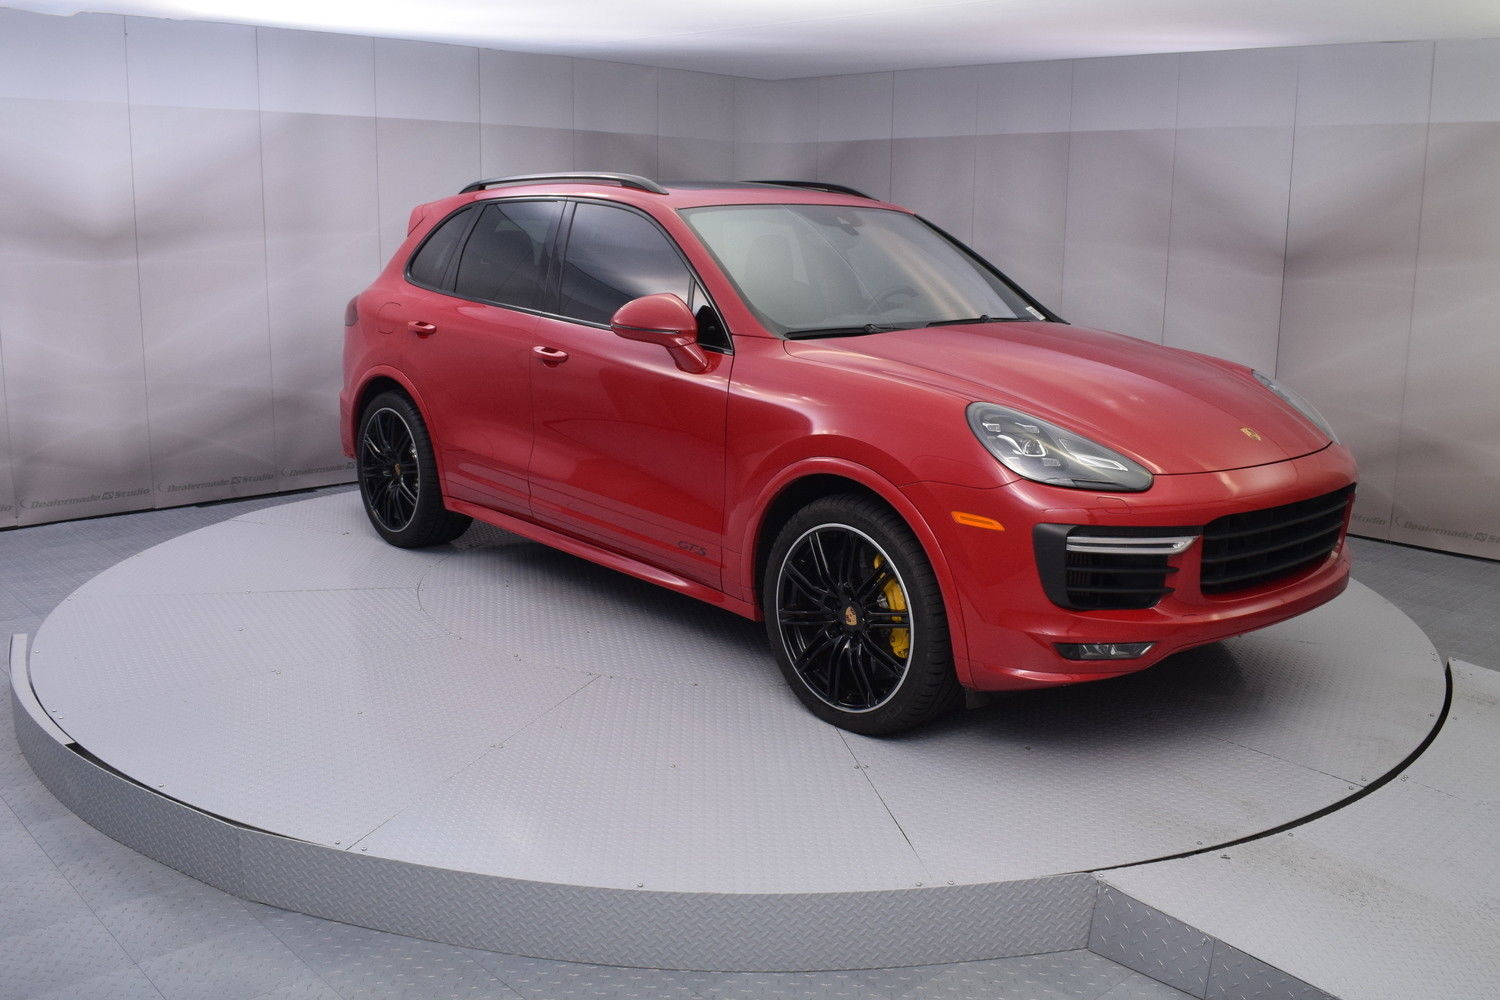 Used 2016 Porsche Cayenne Gts In Carmine Red With 9 885 Miles 2016 Porsche Cayenne Gts In Carmine Red With Black Interior Low Miles 2017 2018 24carshop Com